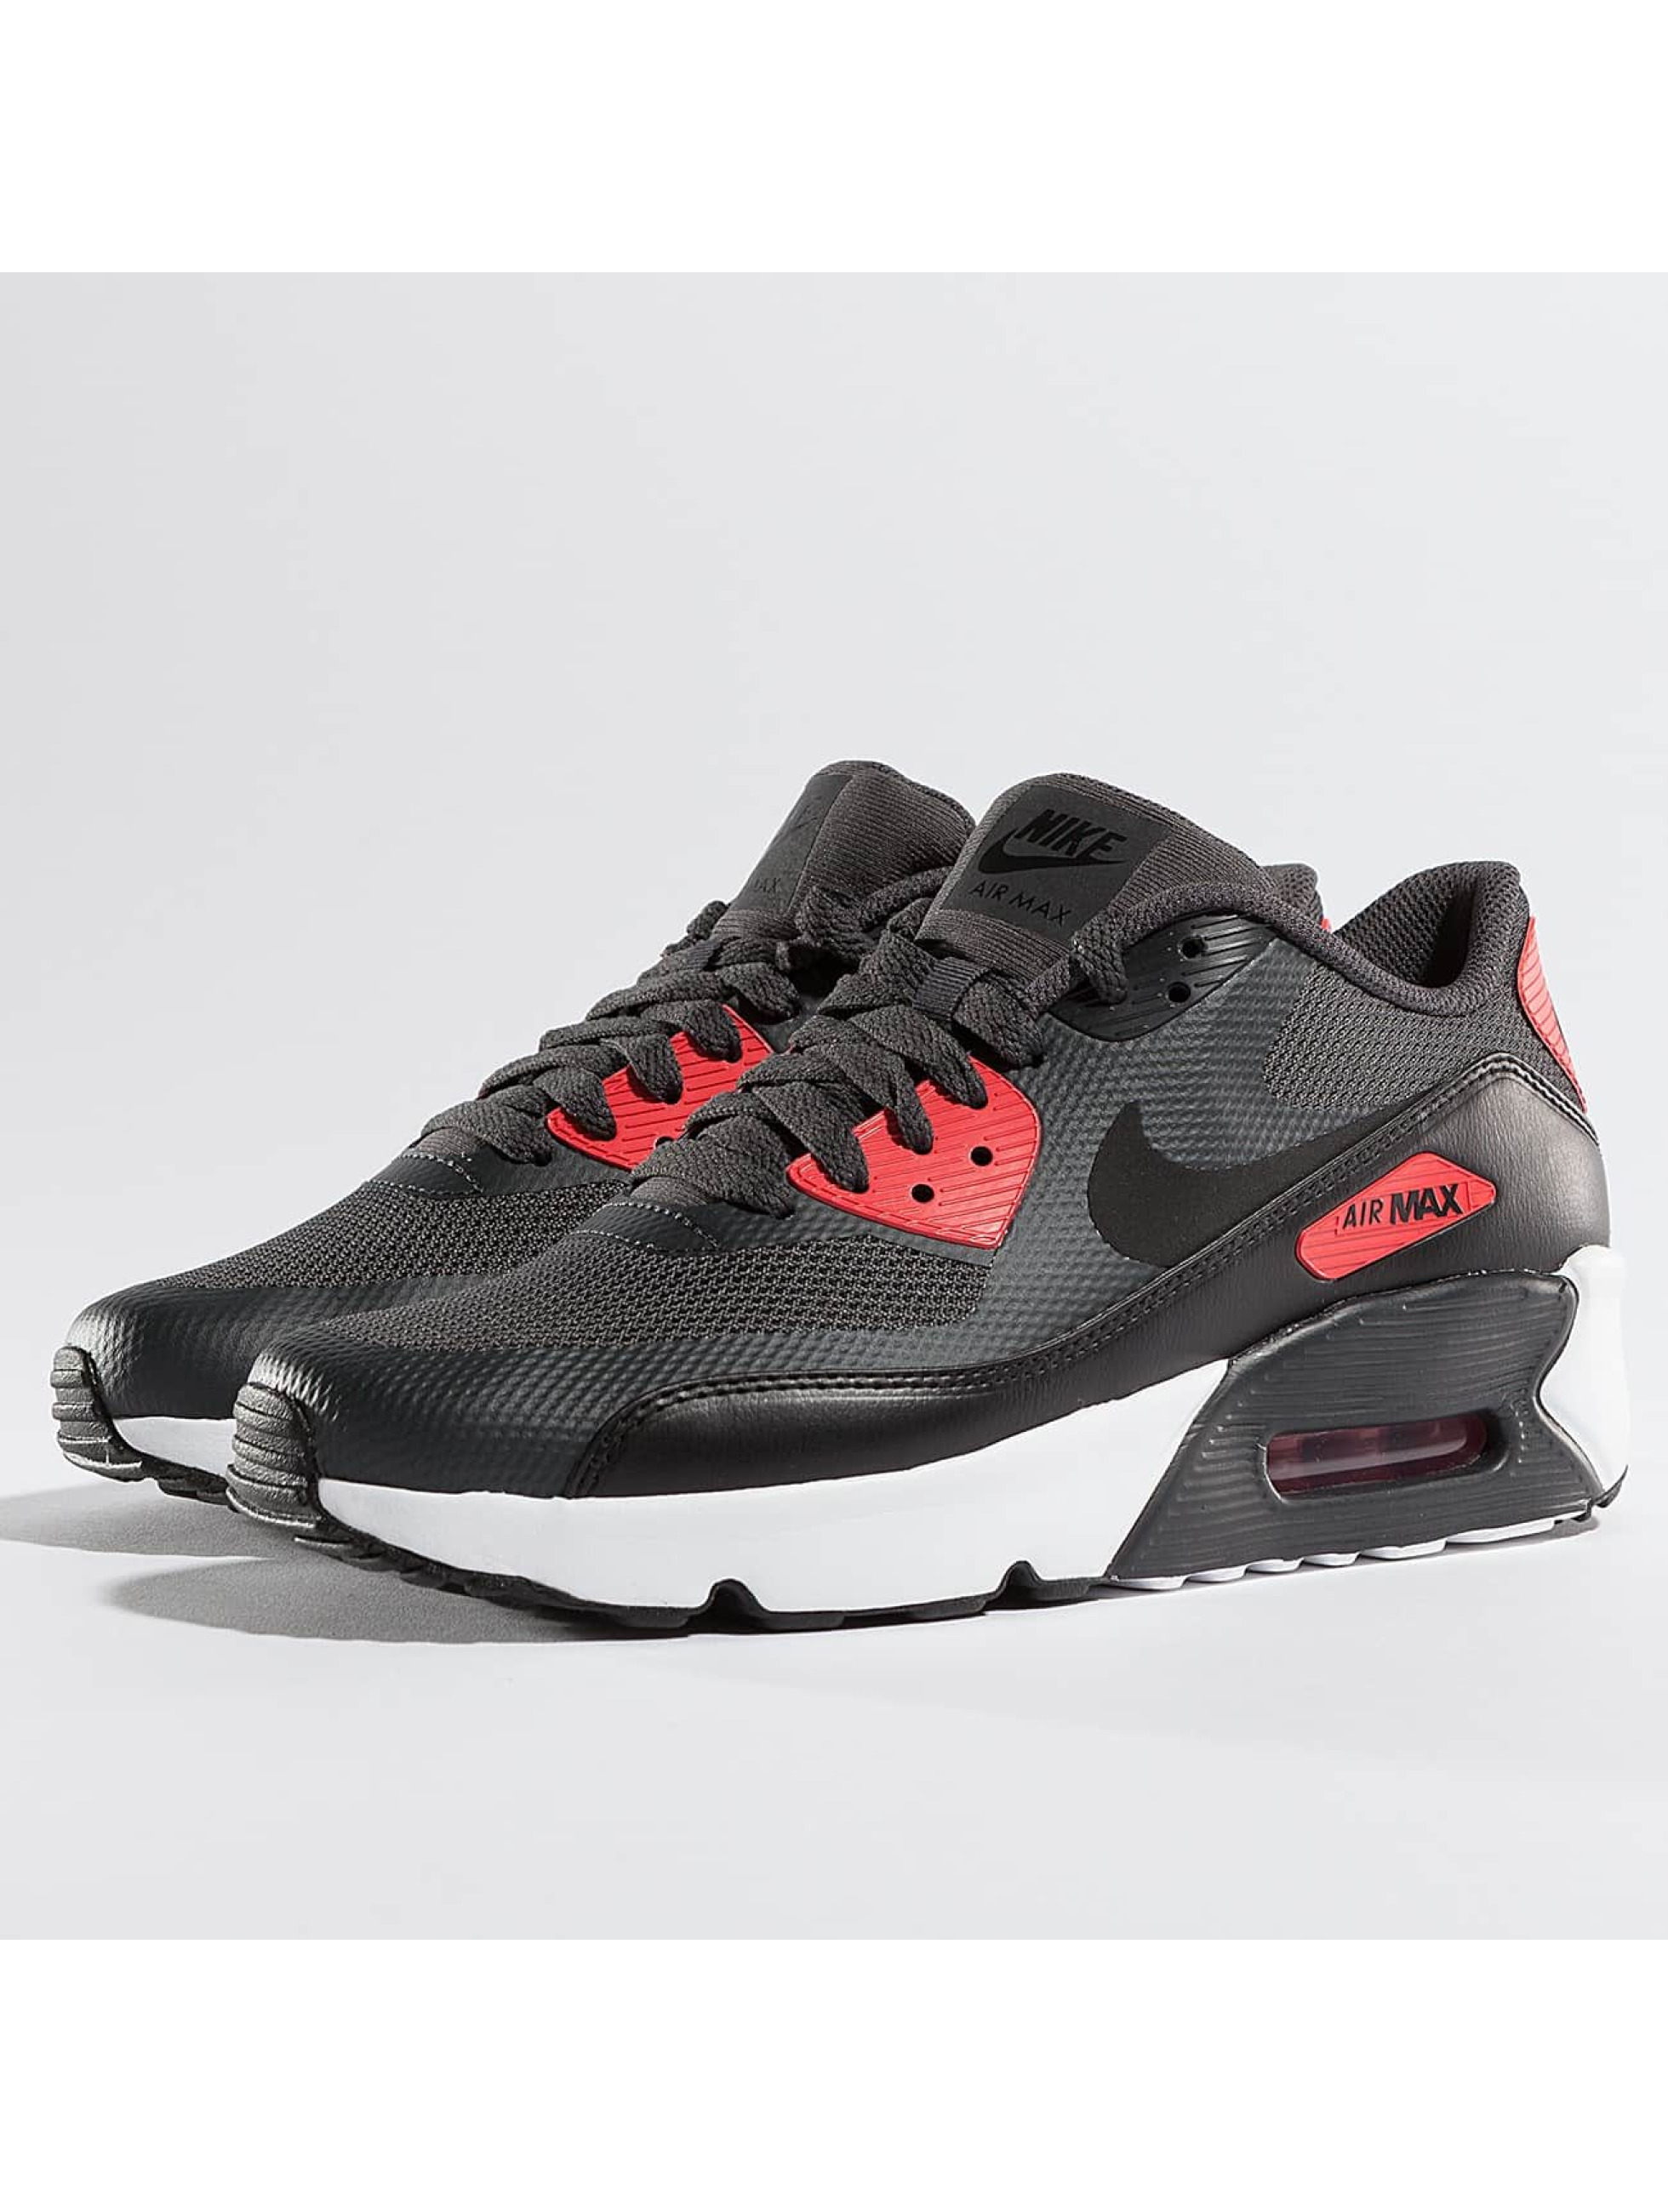 Nike Frauen,Kinder Sneaker Air Max 90 Ultra 2.0 in grau